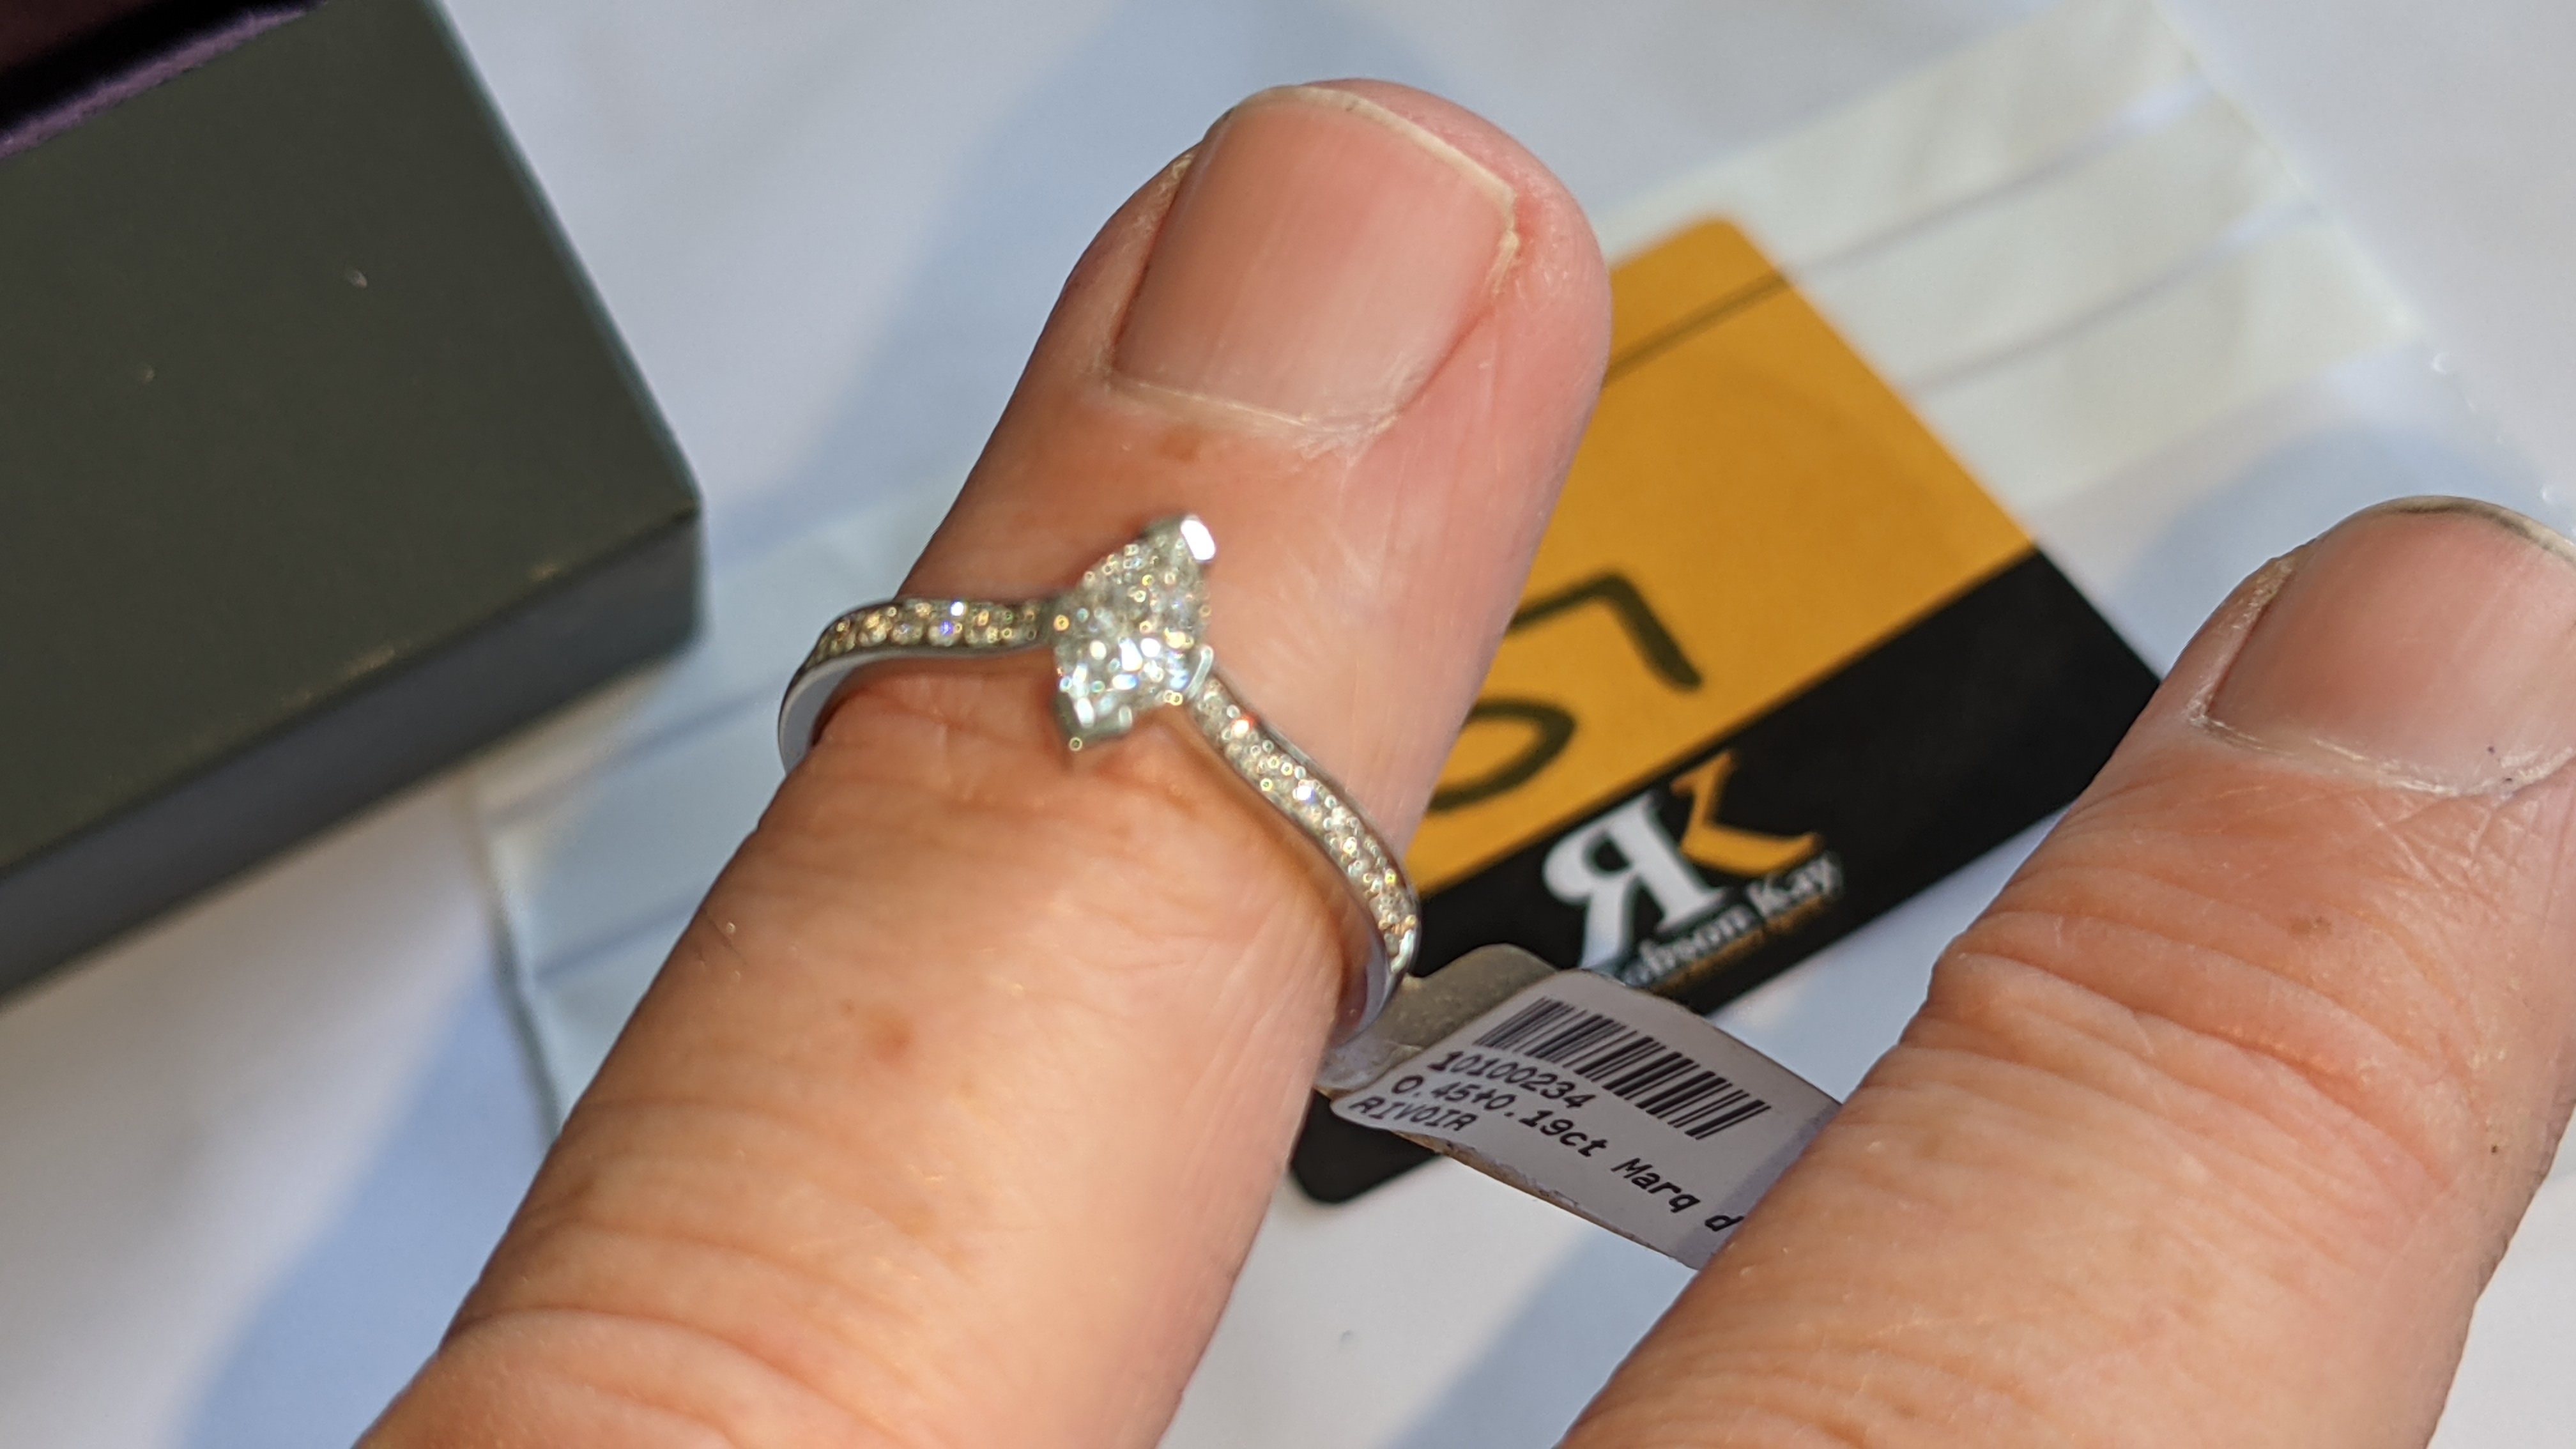 Platinum 950 ring with marquise shaped central diamond plus diamonds on the shoulders either side, t - Image 14 of 16